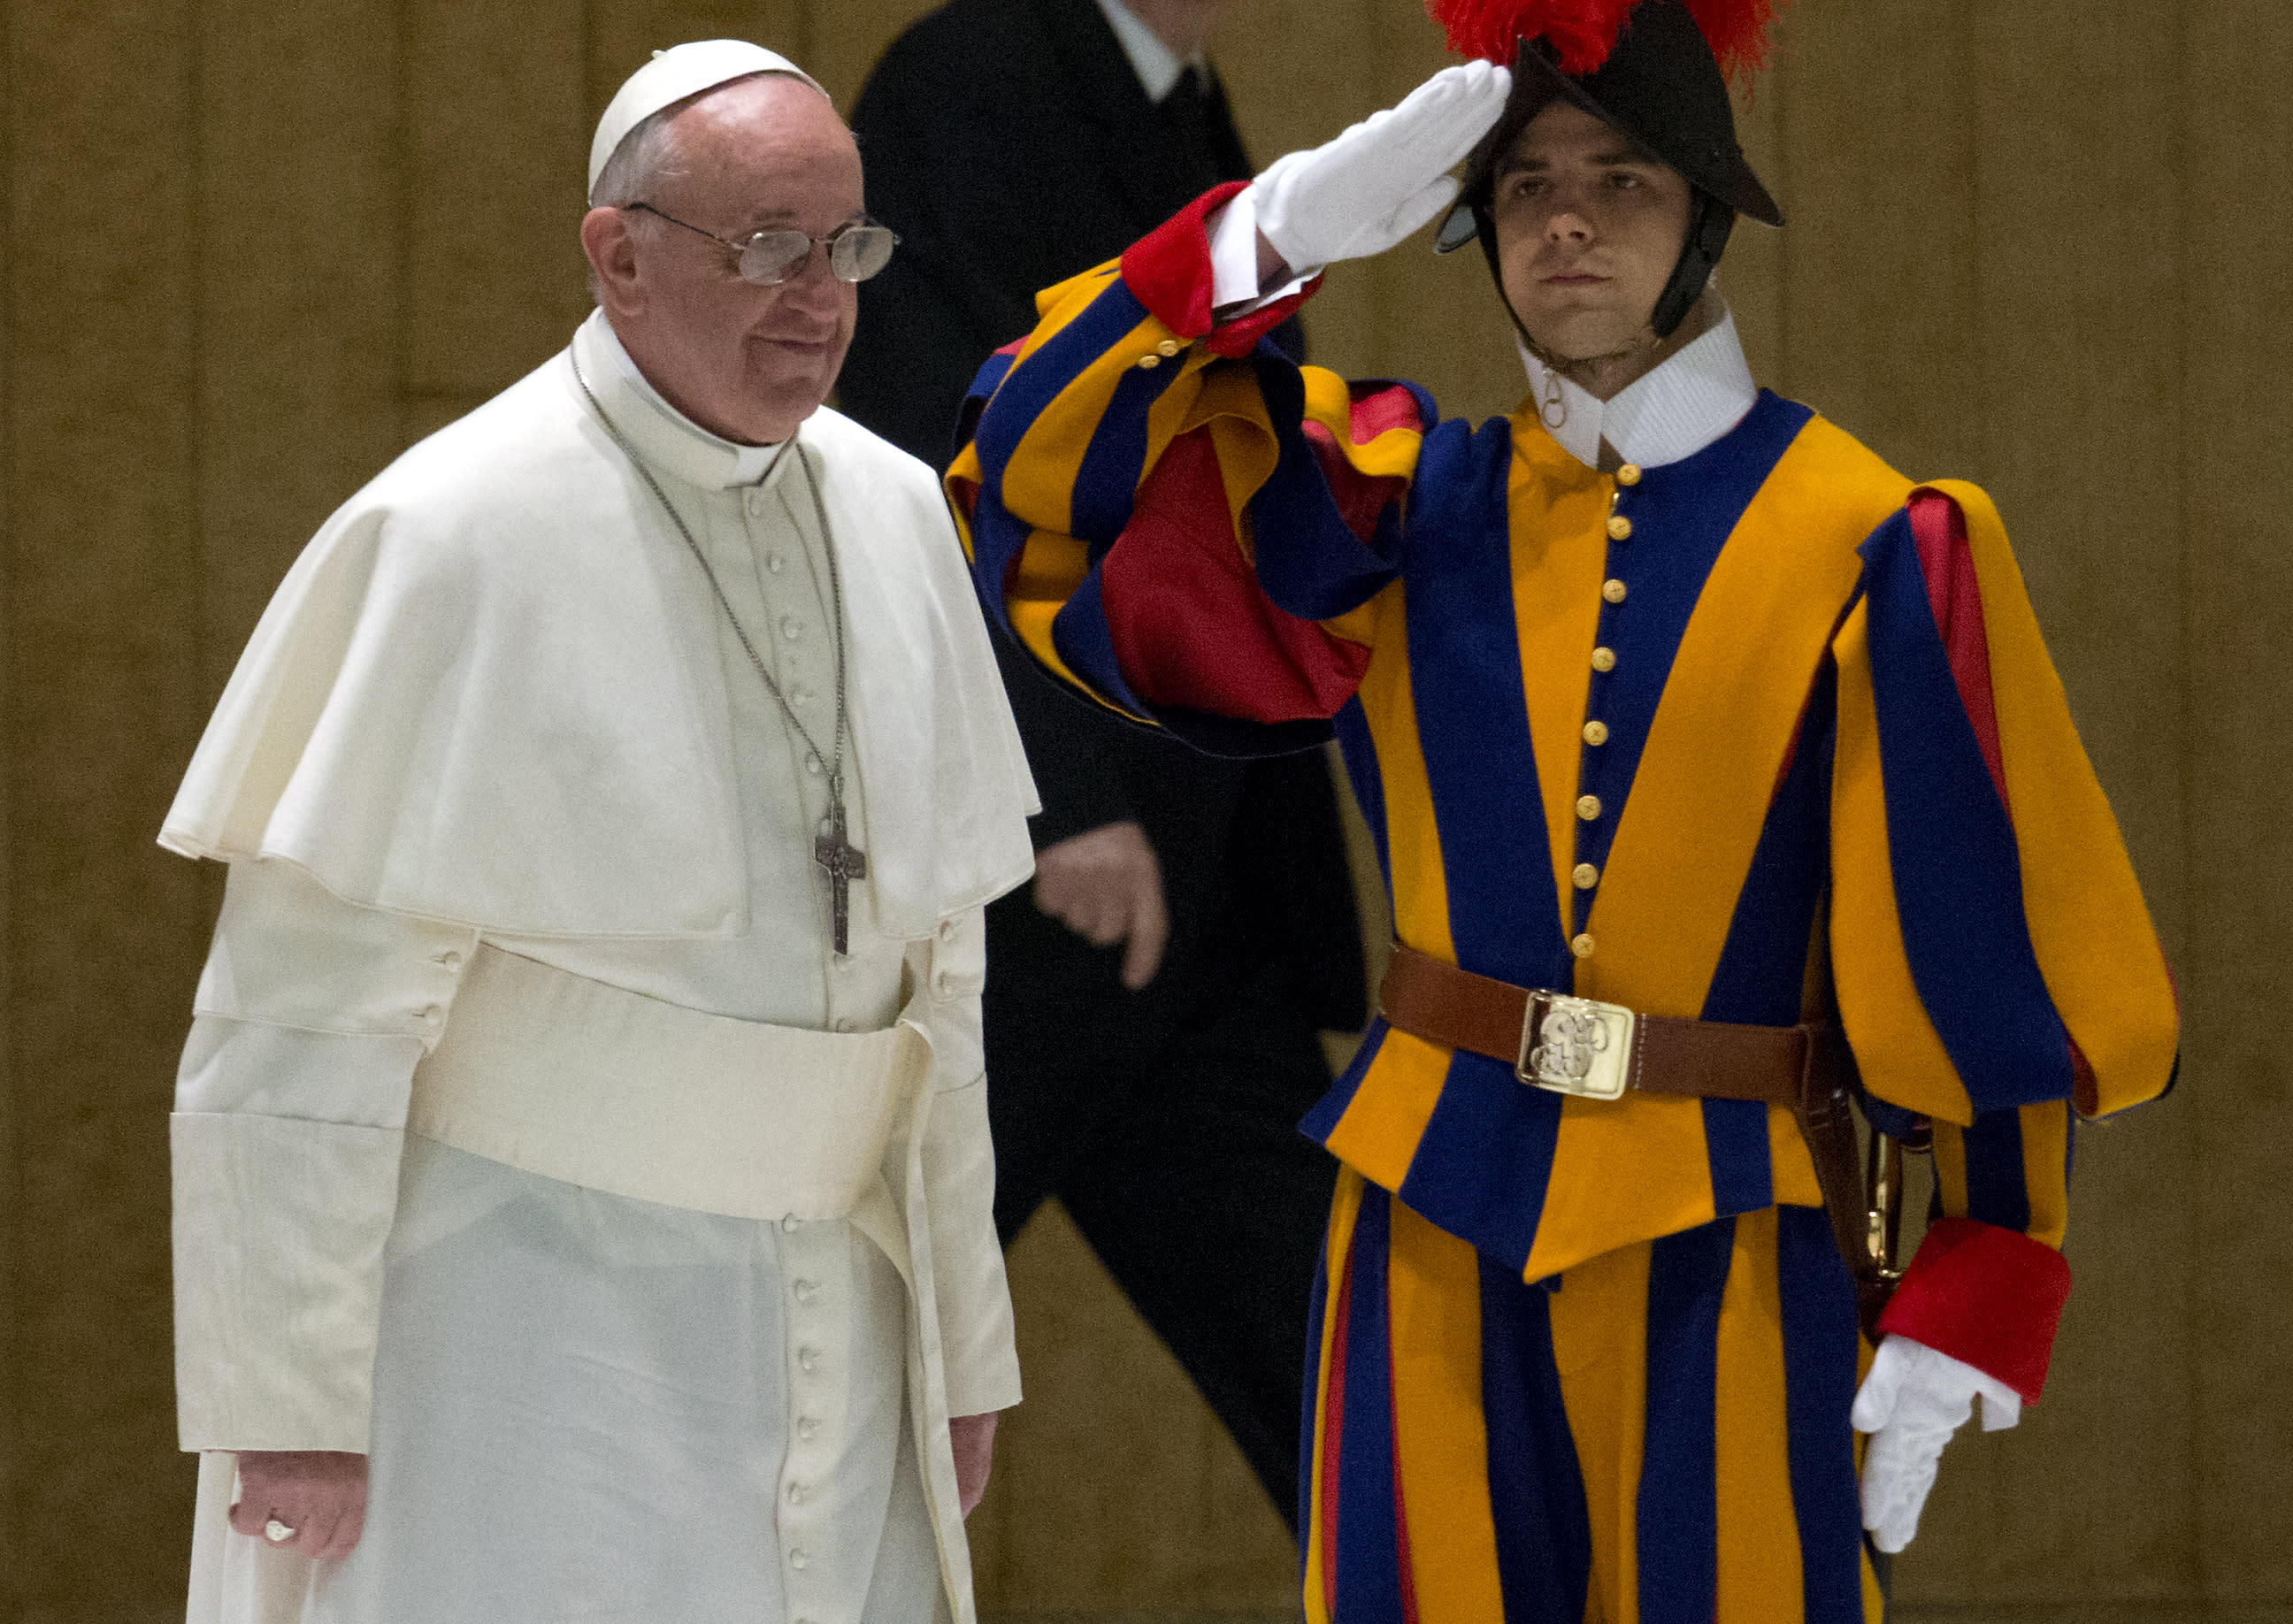 Pope Francis walks past a Swiss guard as he arrives for a meeting with the media at the Pope VI hall, at the Vatican, Saturday, March 16, 2013. (AP Photo/Michael Sohn)